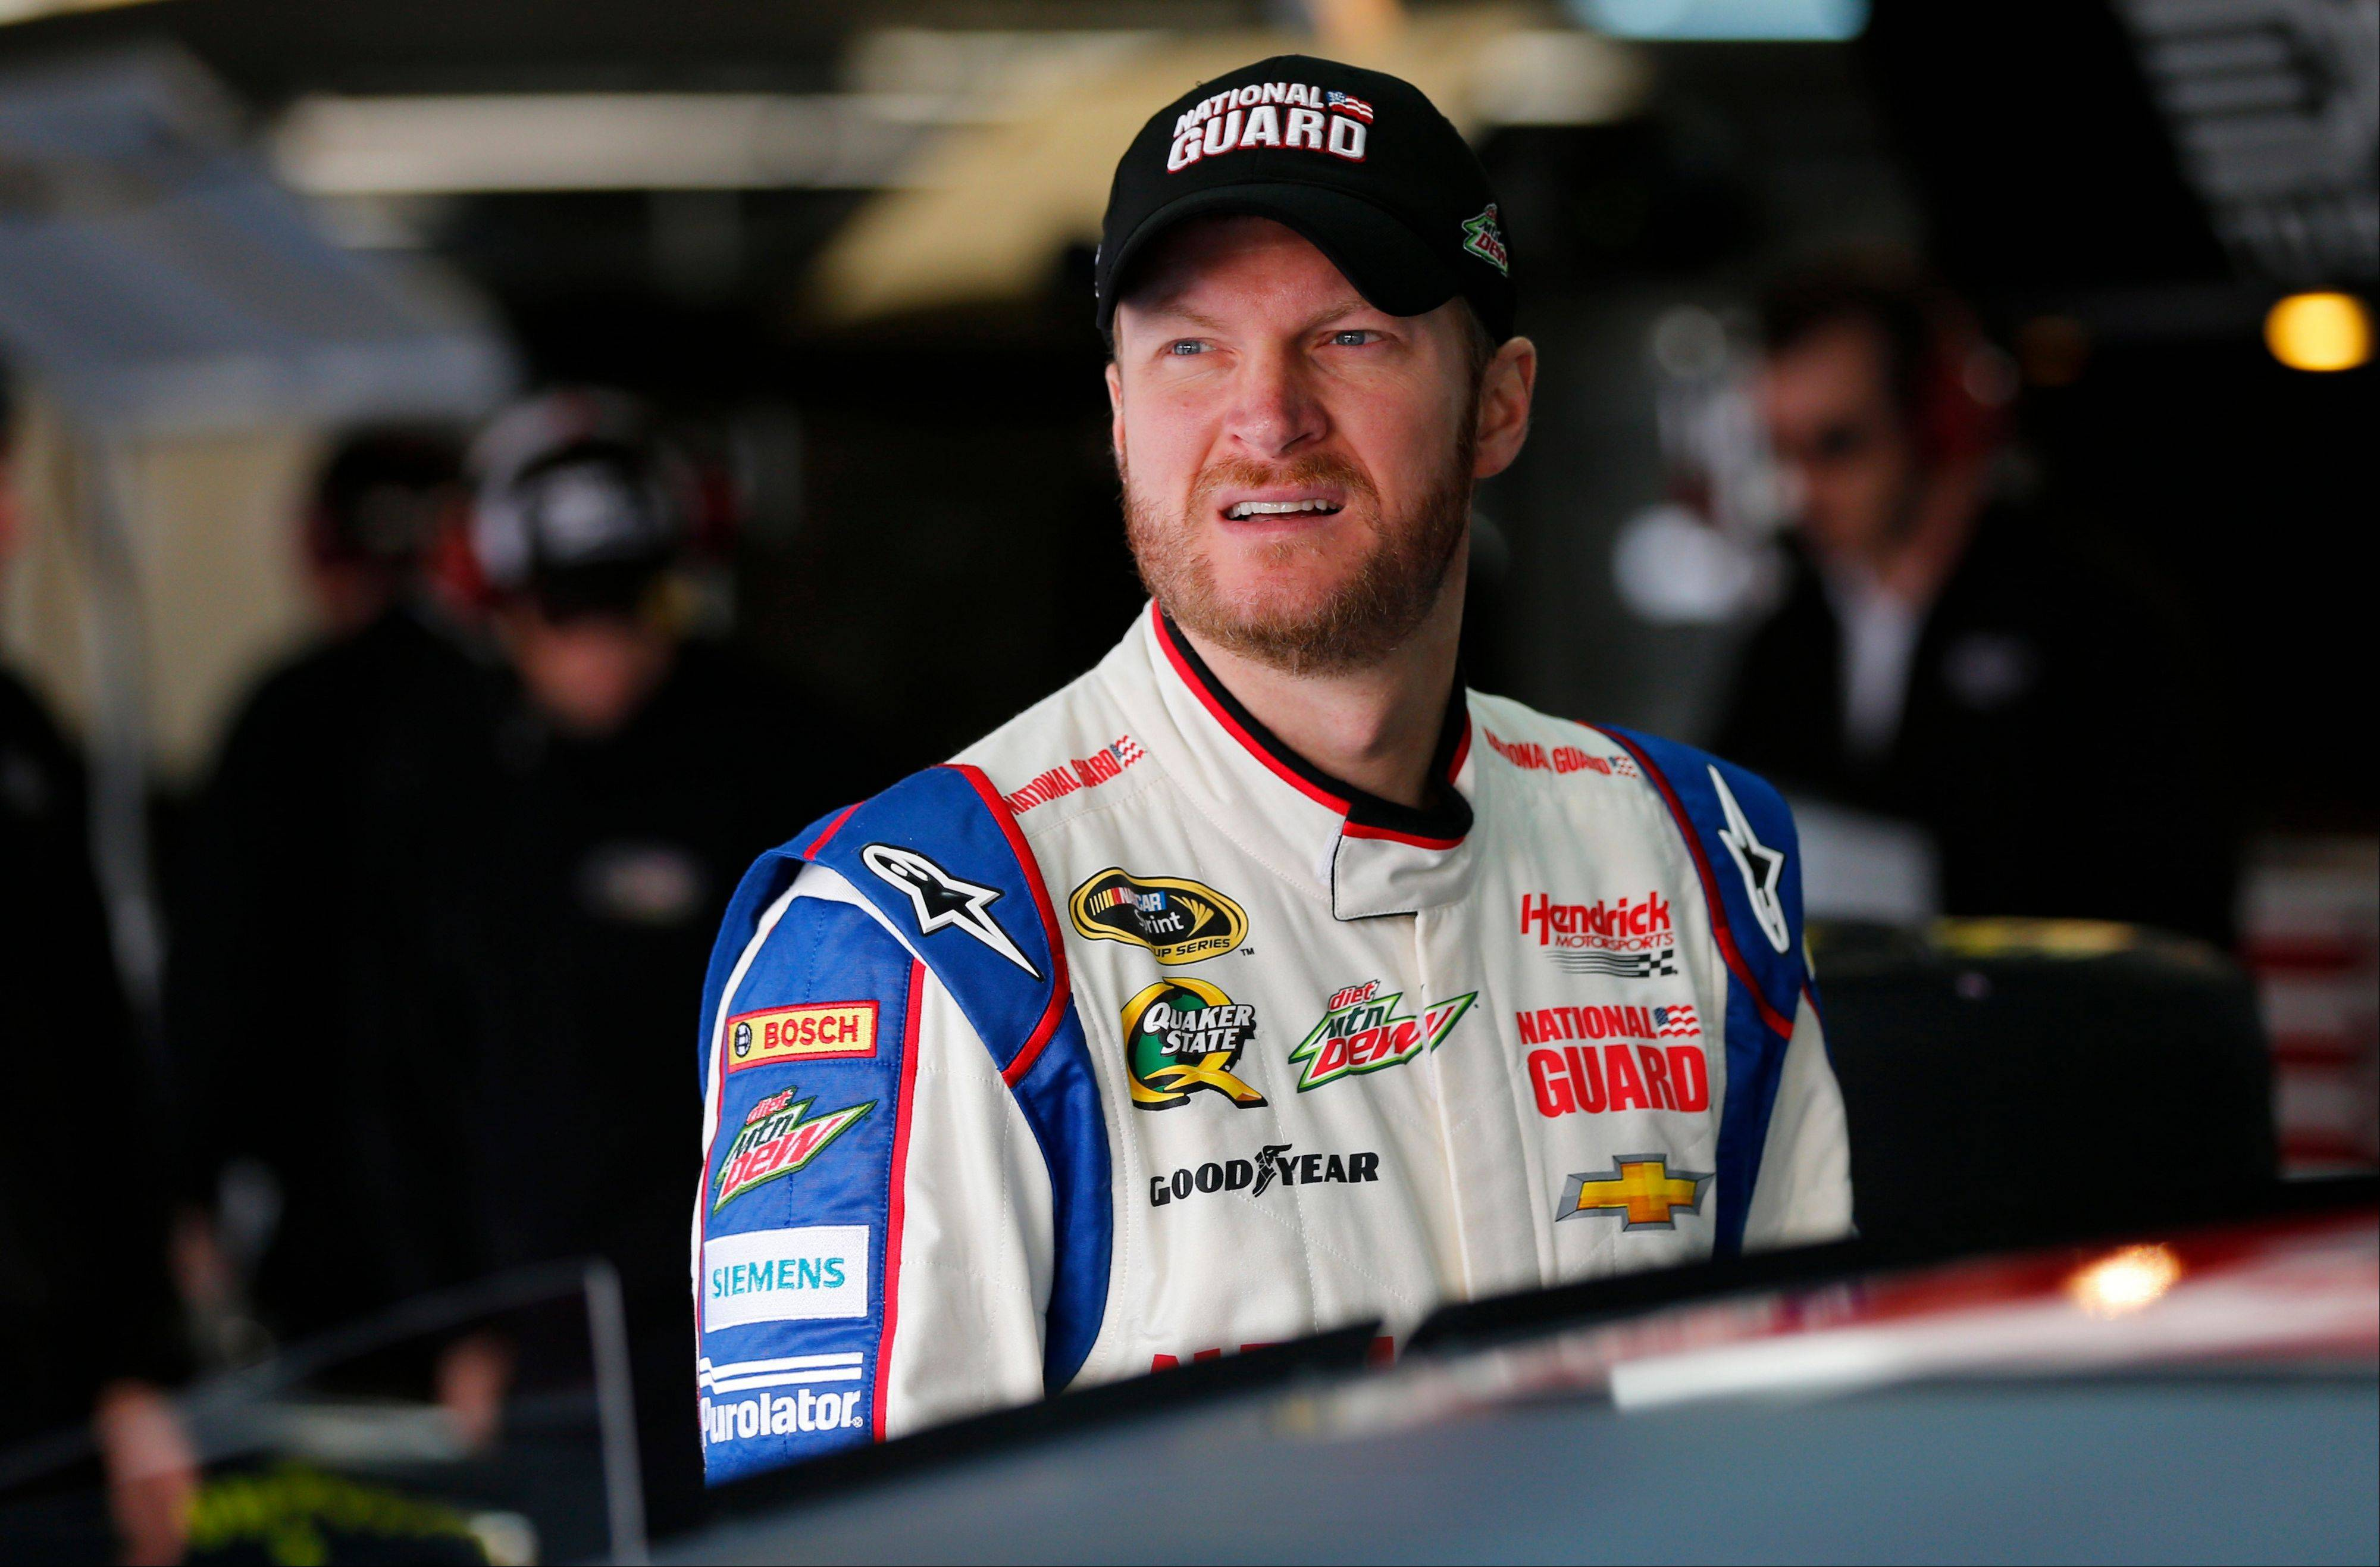 Dale Earnhardt Jr looks out of the garage area Tuesday before testing for the NASCAR Sprint Cup auto racing series at Charlotte Motor Speedway in Concord, N.C.